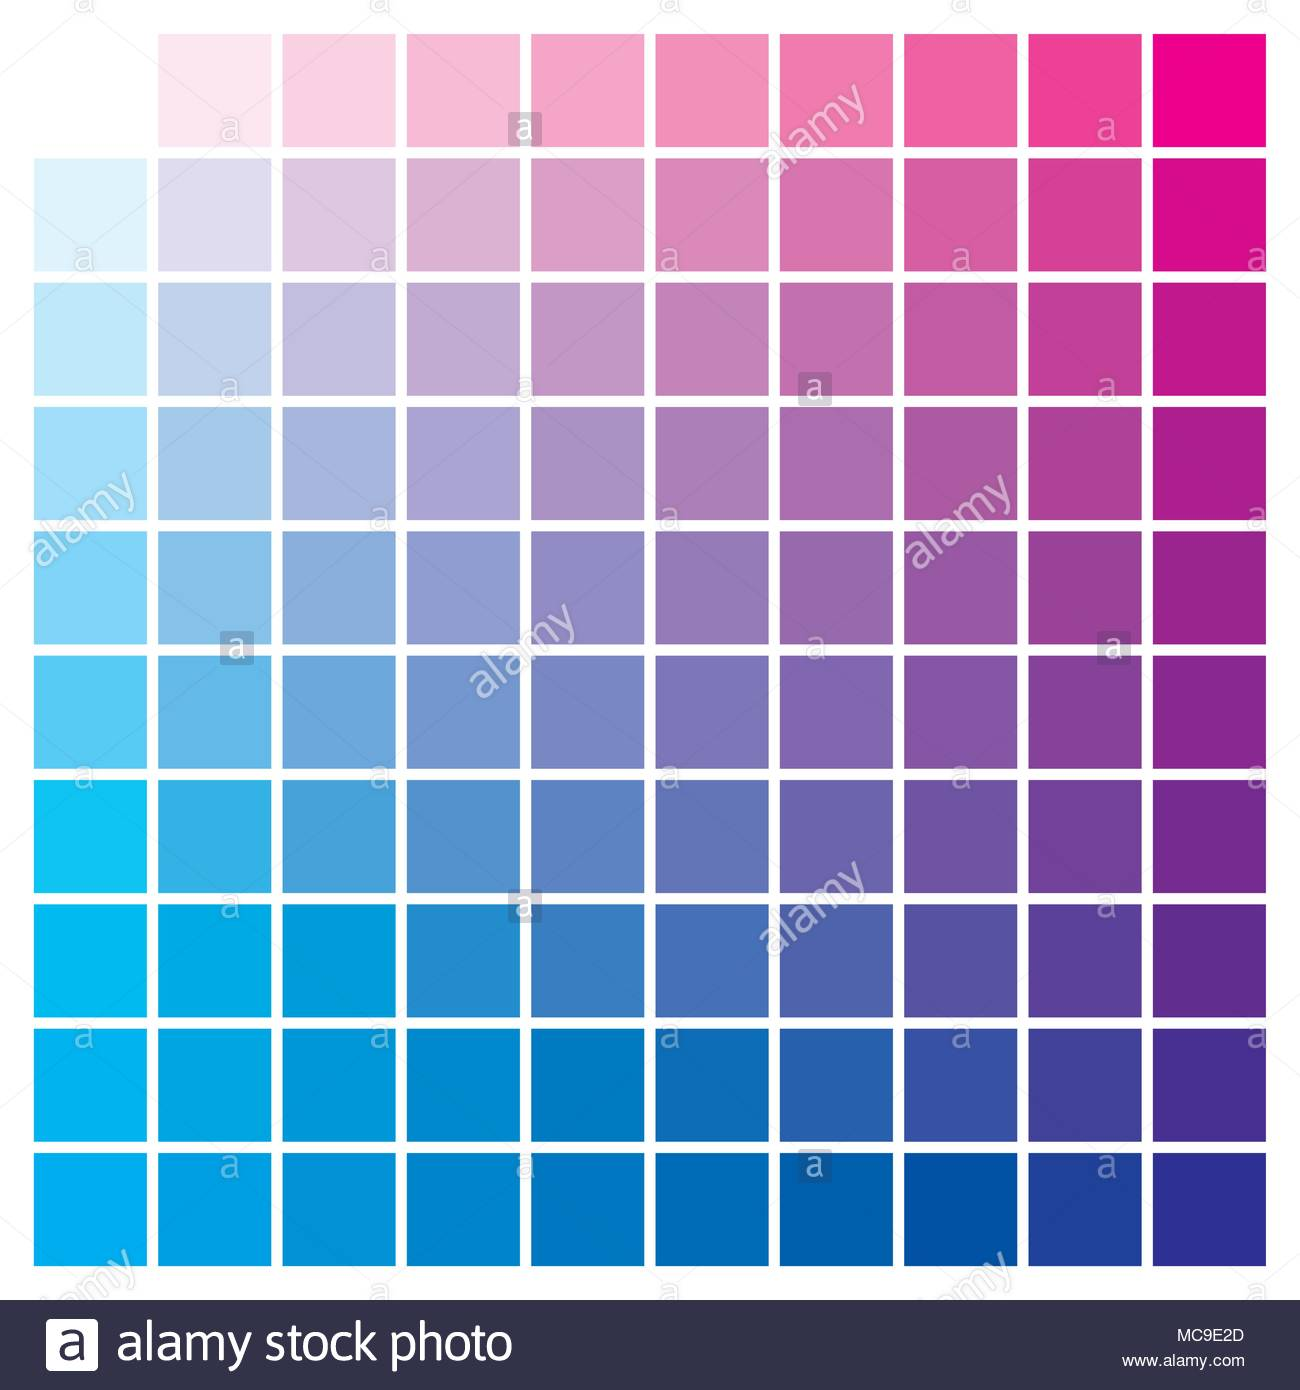 cmyk color chart to use in prepress and printing used to pick color